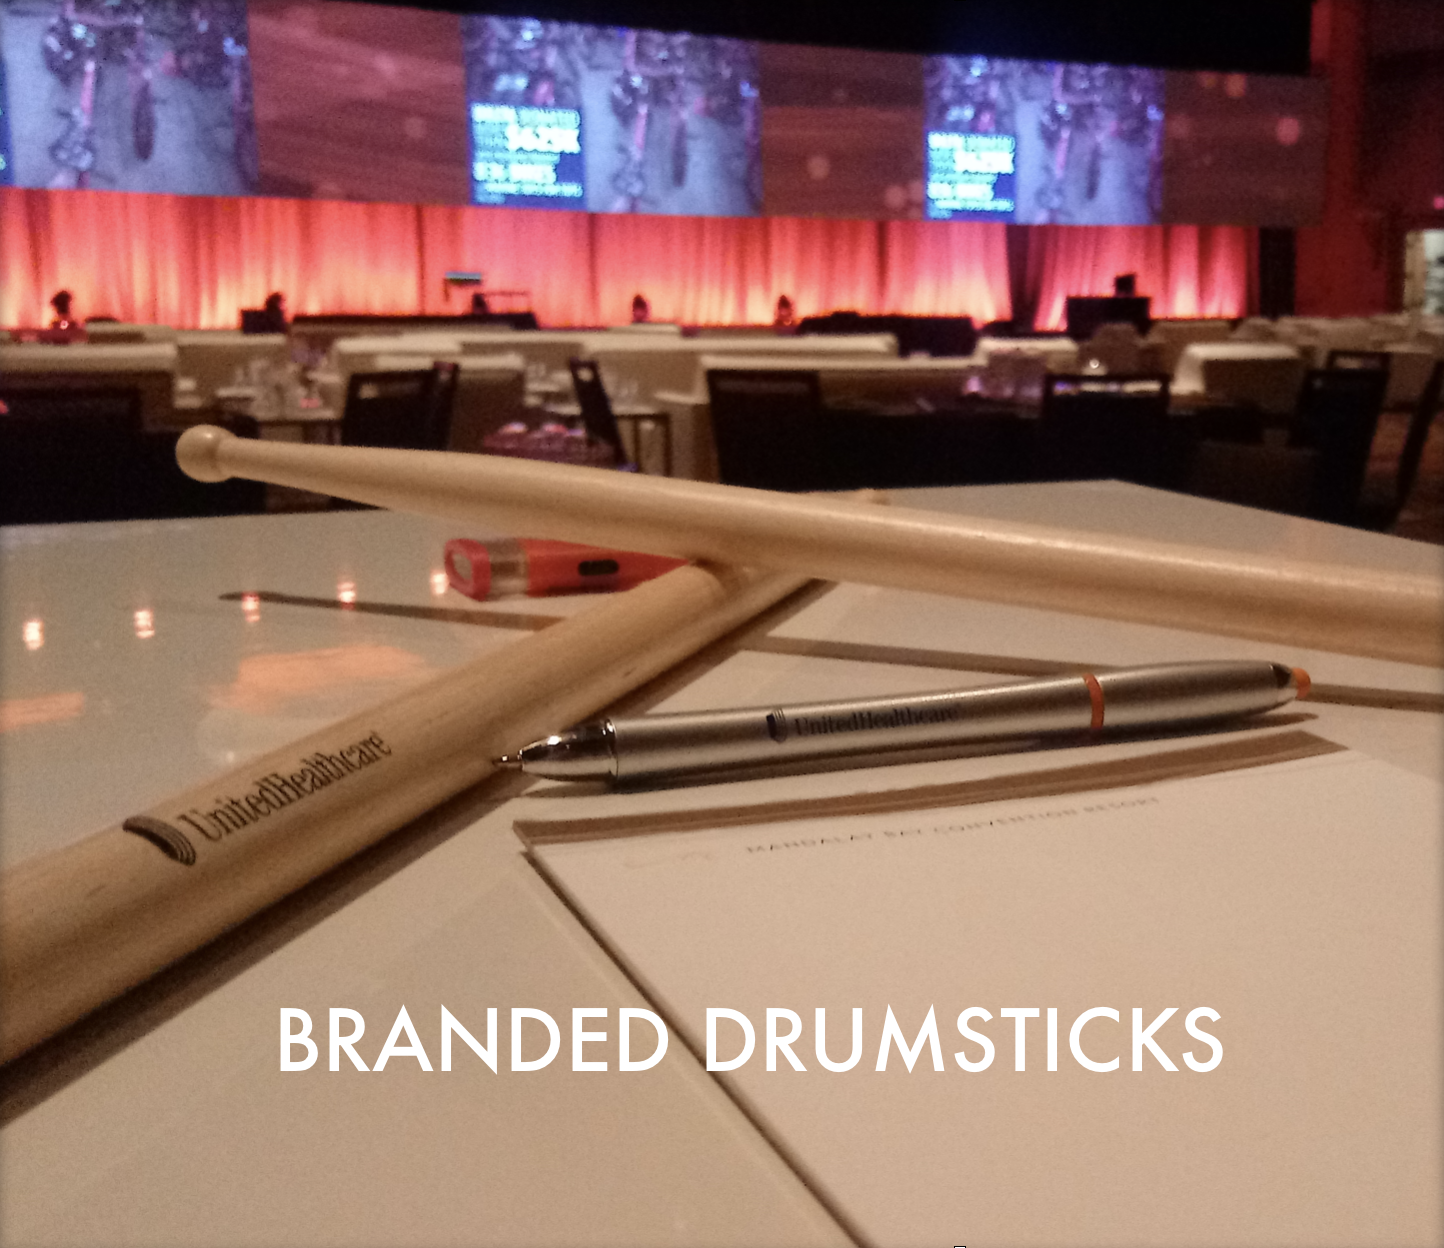 LED TCP Branded Drumsticks